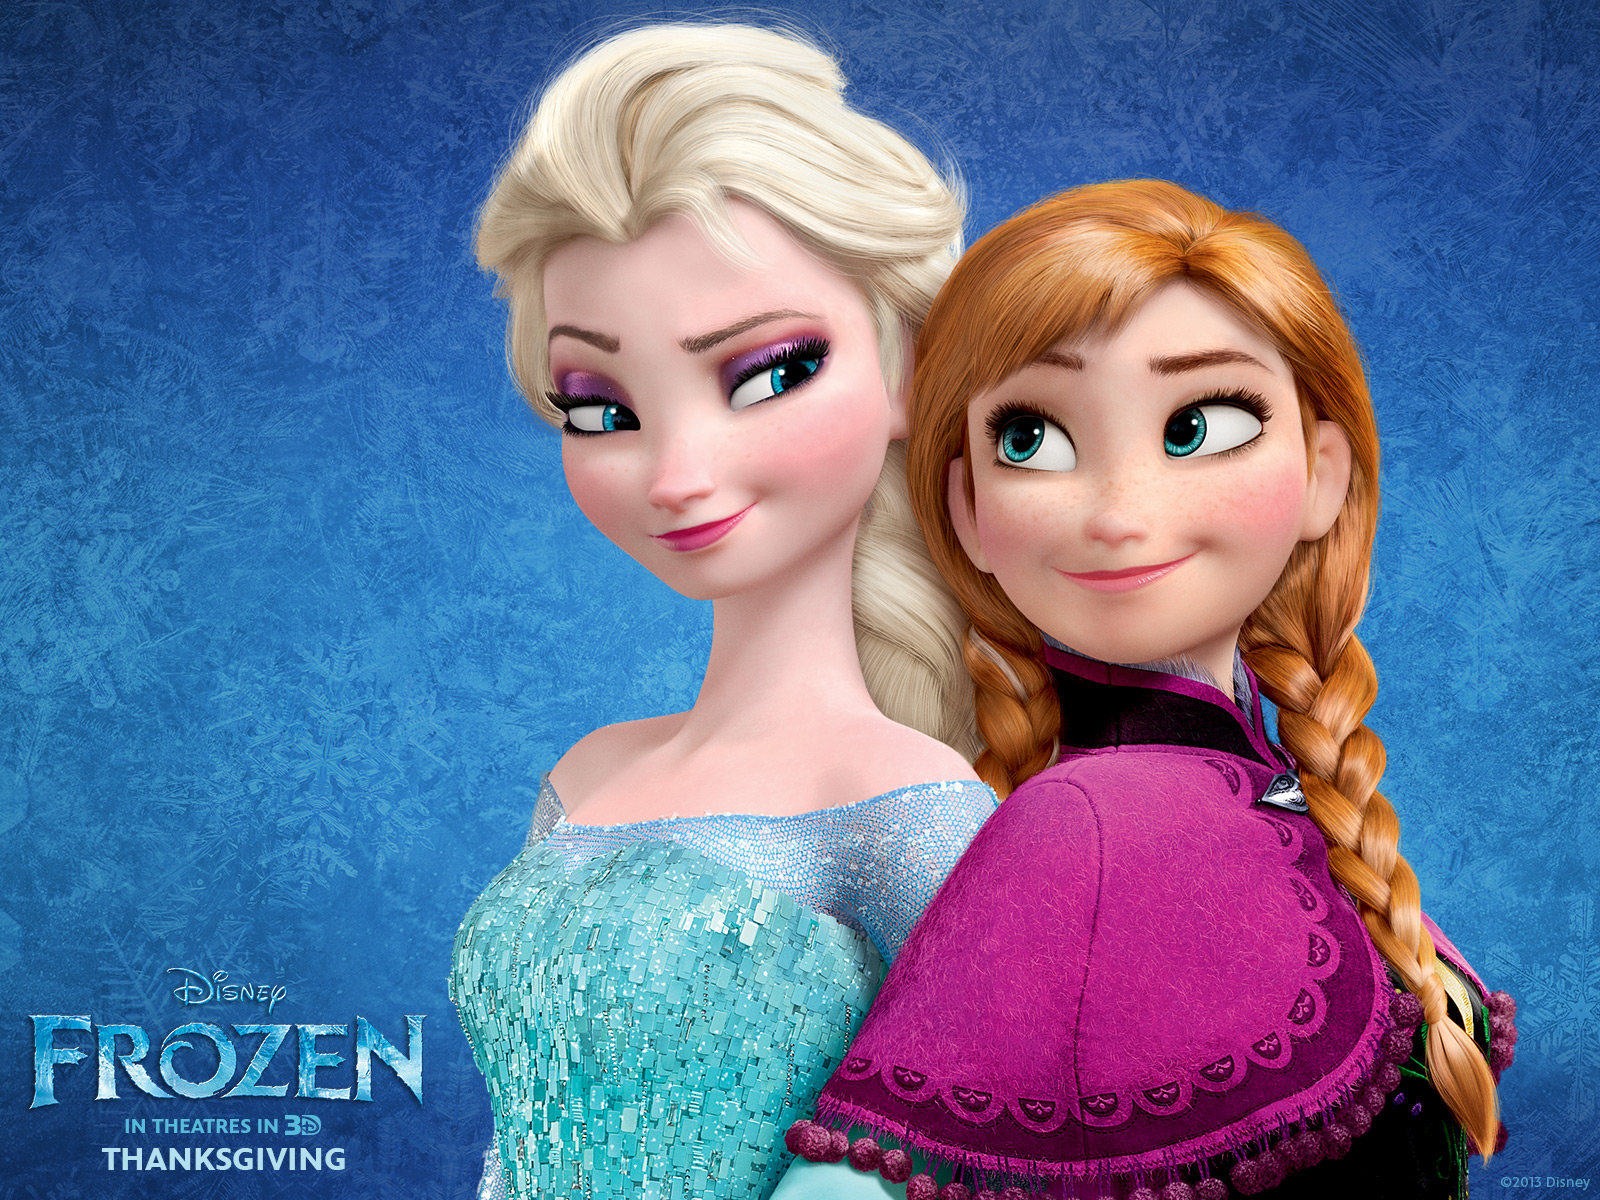 Elsa and Anna Wallpapers - Frozen Wallpaper (35894707) - Fanpop